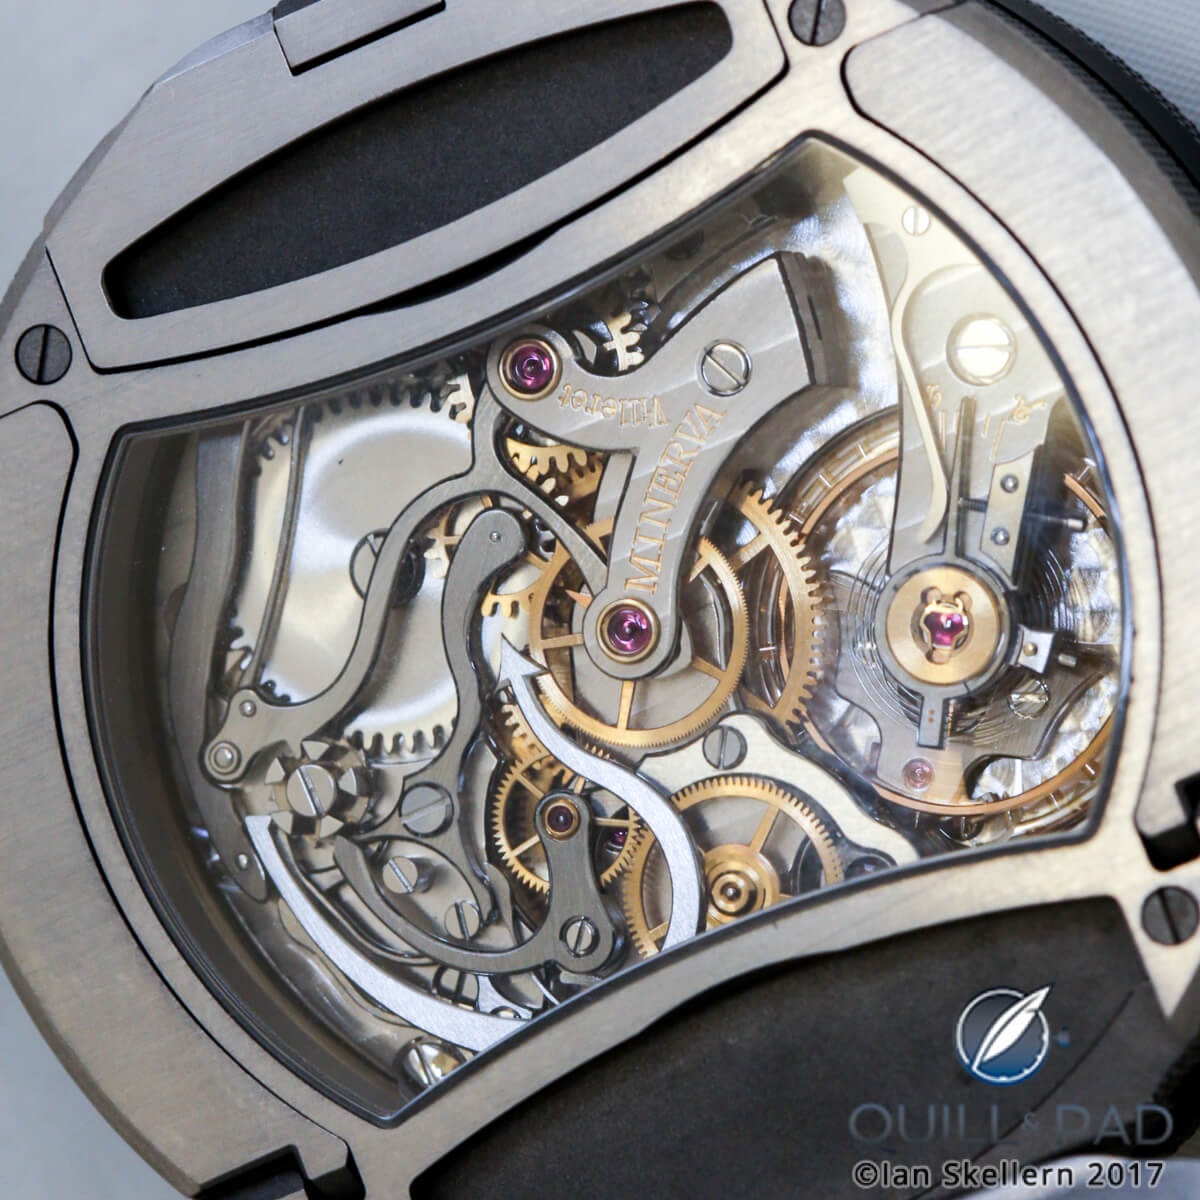 View through the display back of the Montblanc Timewalker Chronograph Rally Timer Counter Limited Edition 100